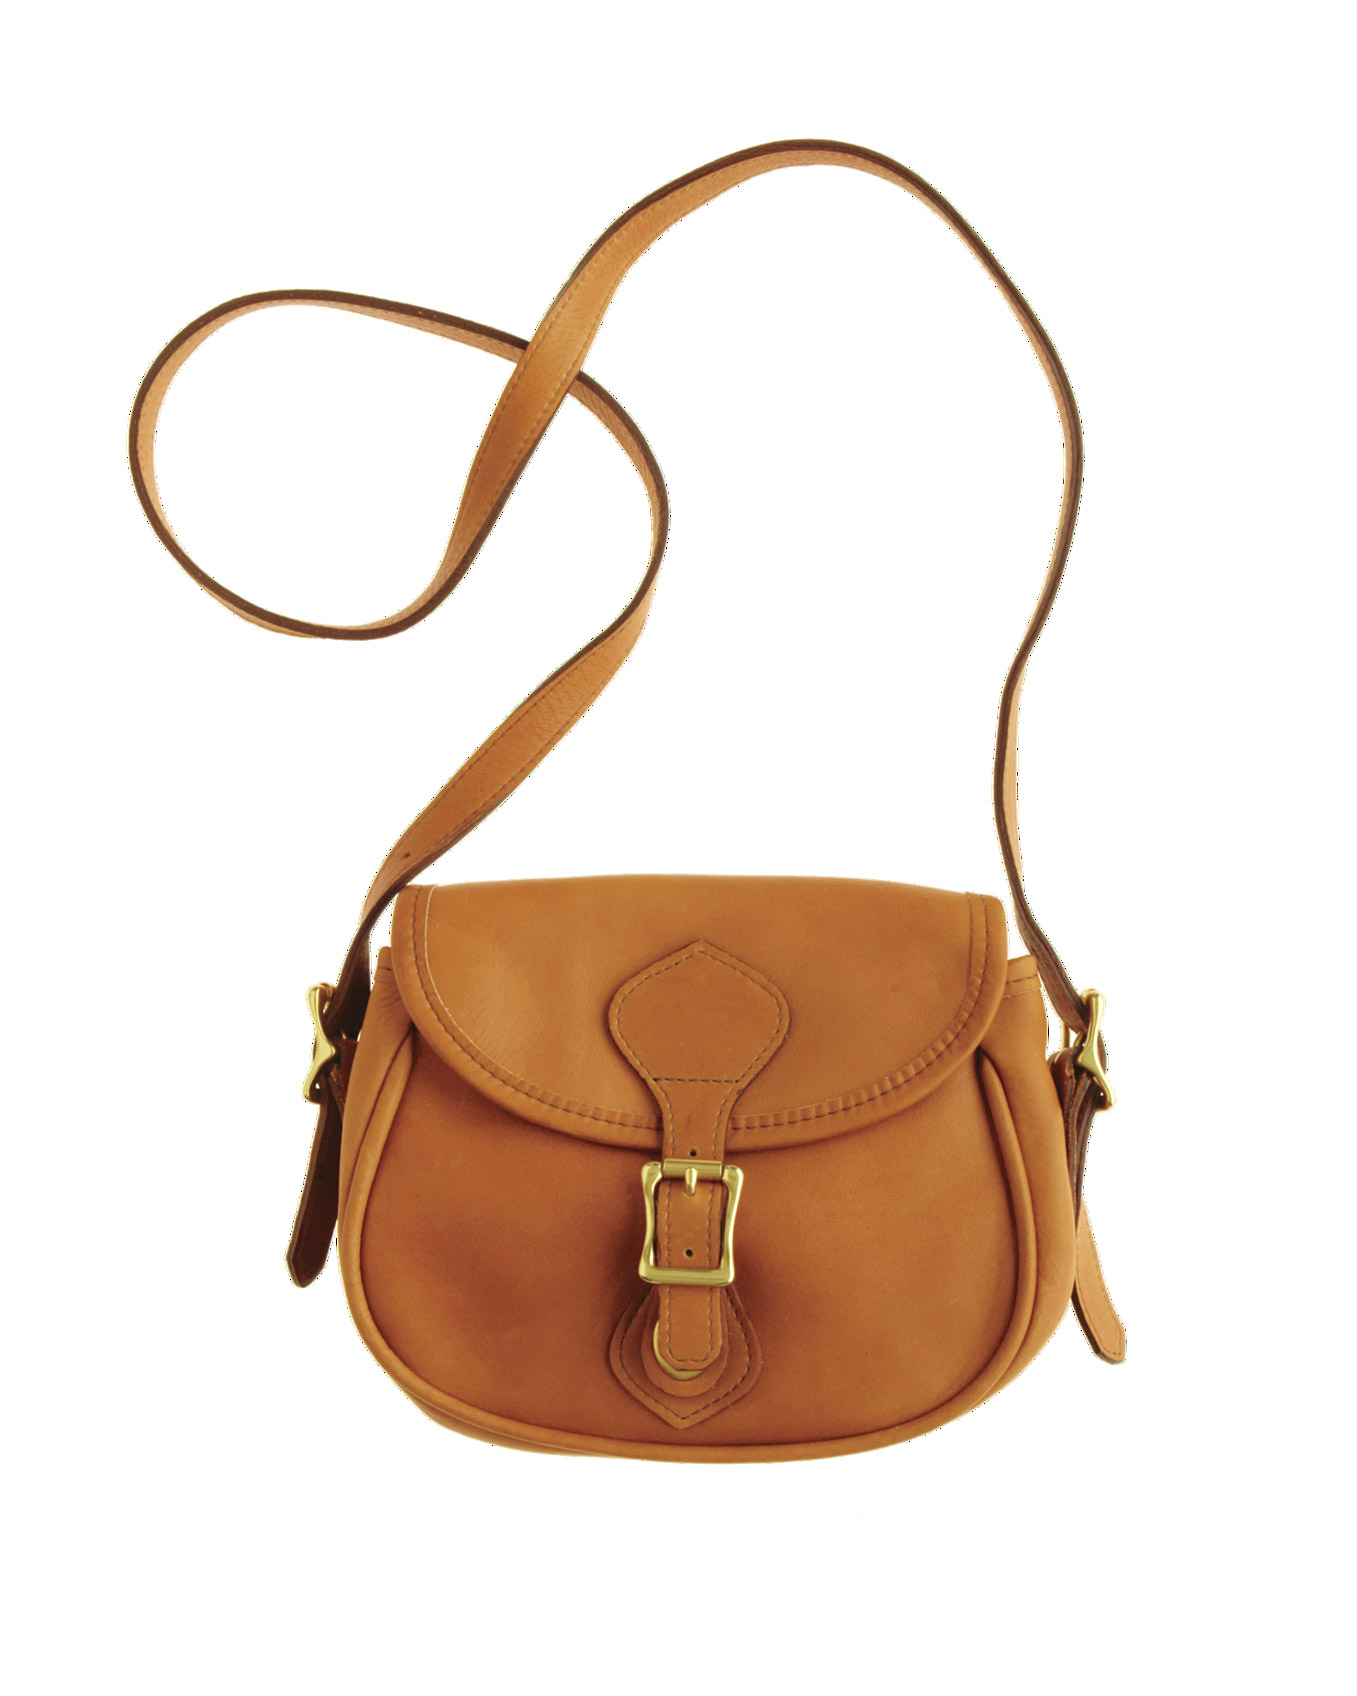 travel-accessories-brown-purse-mwd107604.jpg